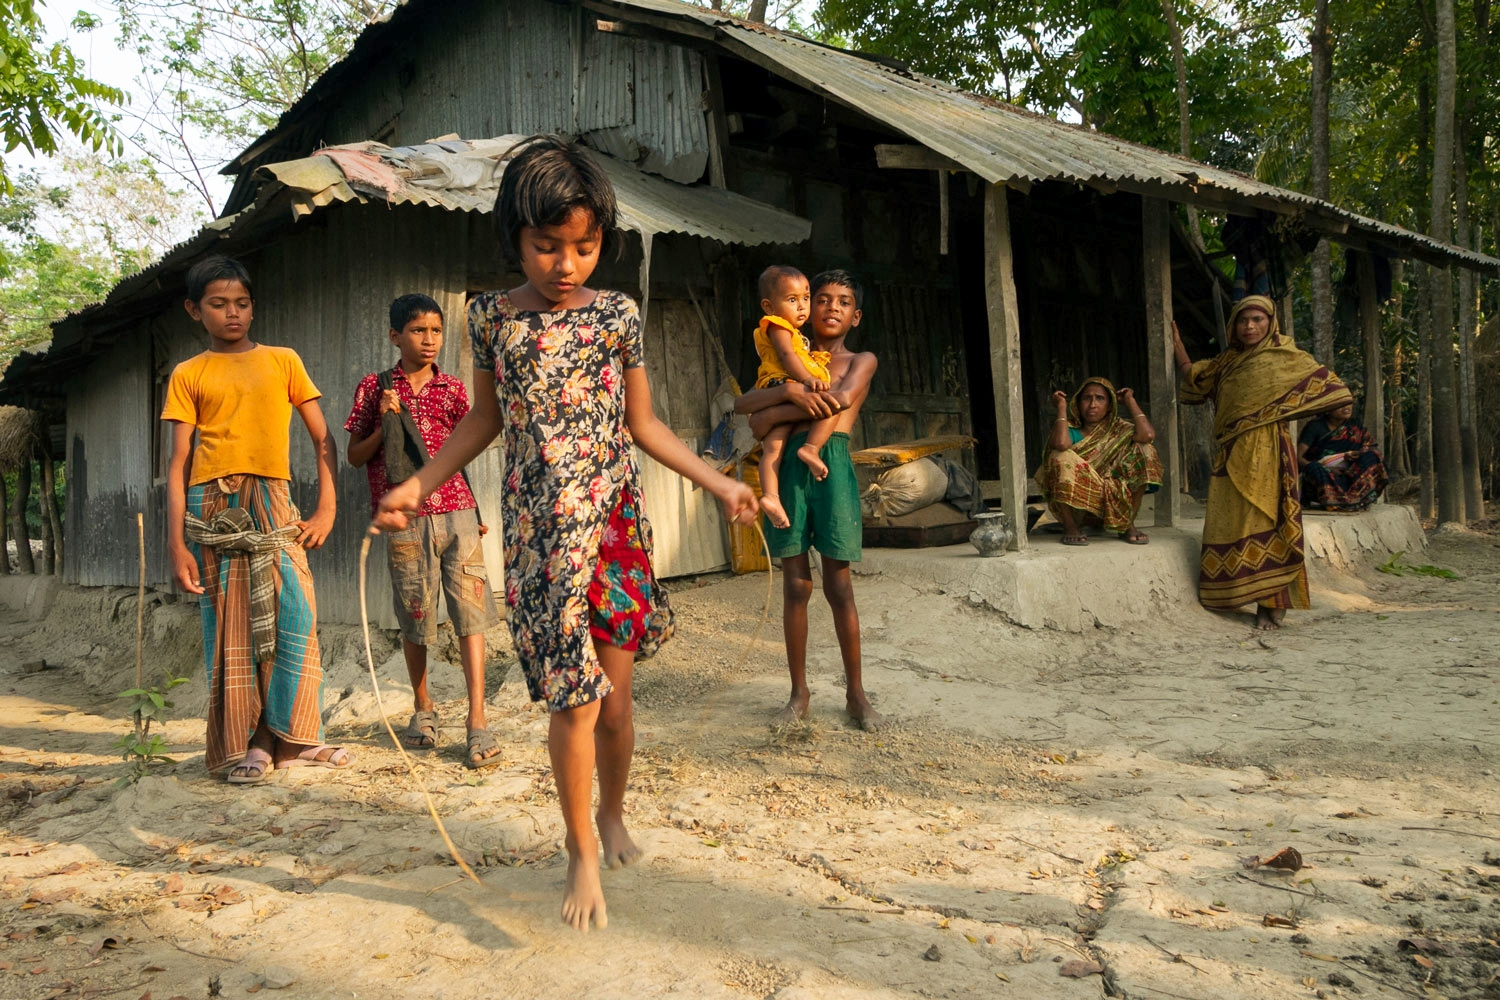 OPEN THIS PUBLICATION  SAFE AND SOUND: SECURING THE LIVES AND LIVELIHOODS OF BANGLADESH'S MOST VULNERABLE   Jumping rope; Barisal, Bangladesh